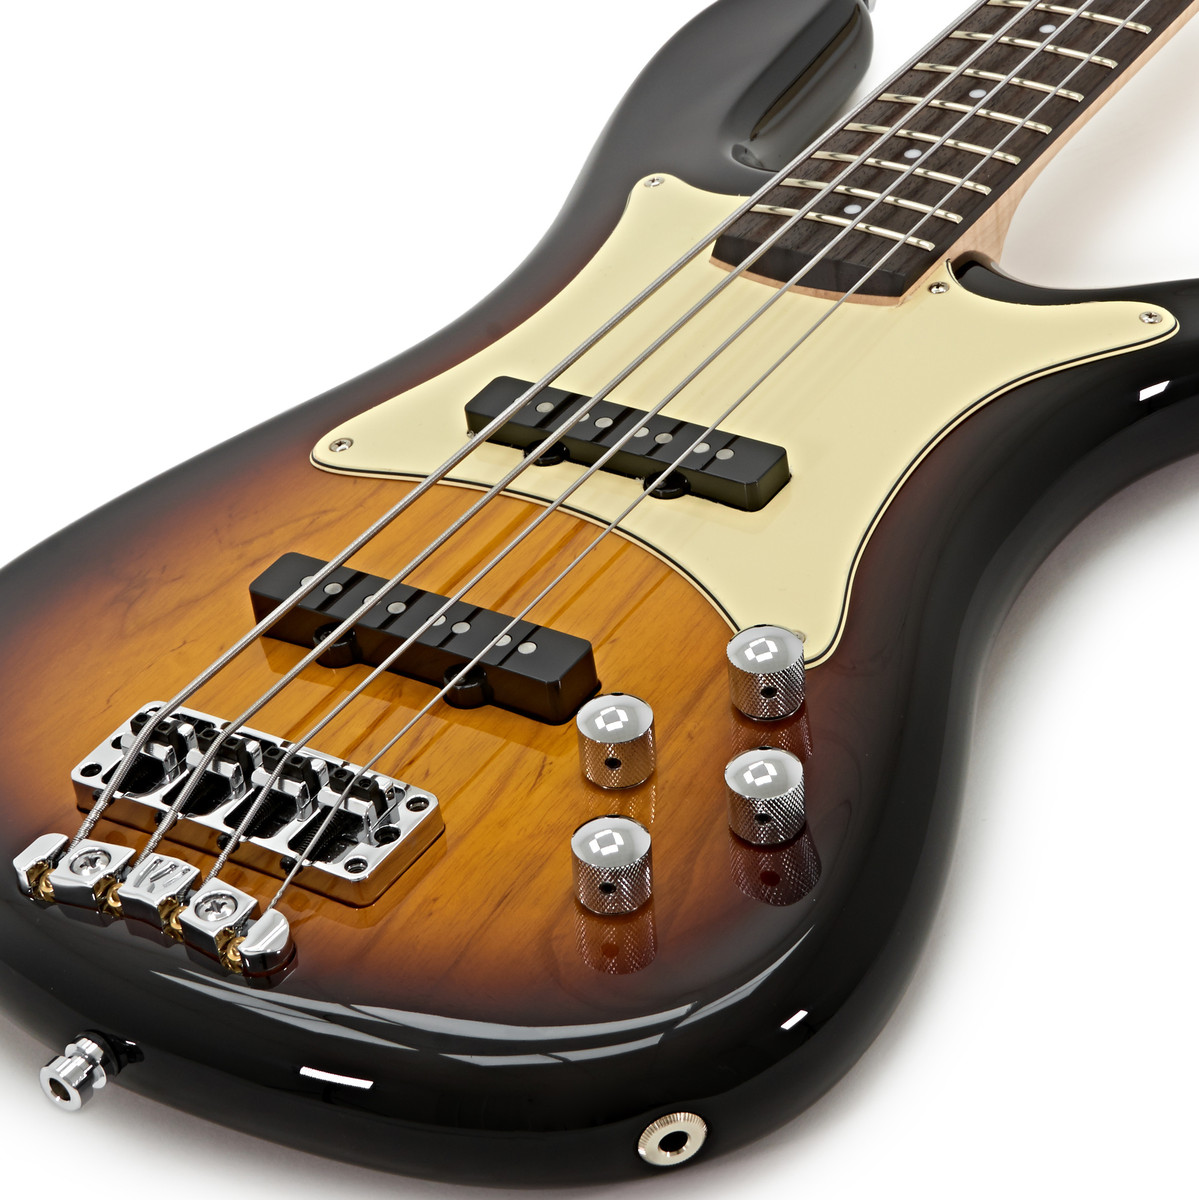 warwick gps streamer cv 4 string bass guitar  vintage sunburst at gear4music com